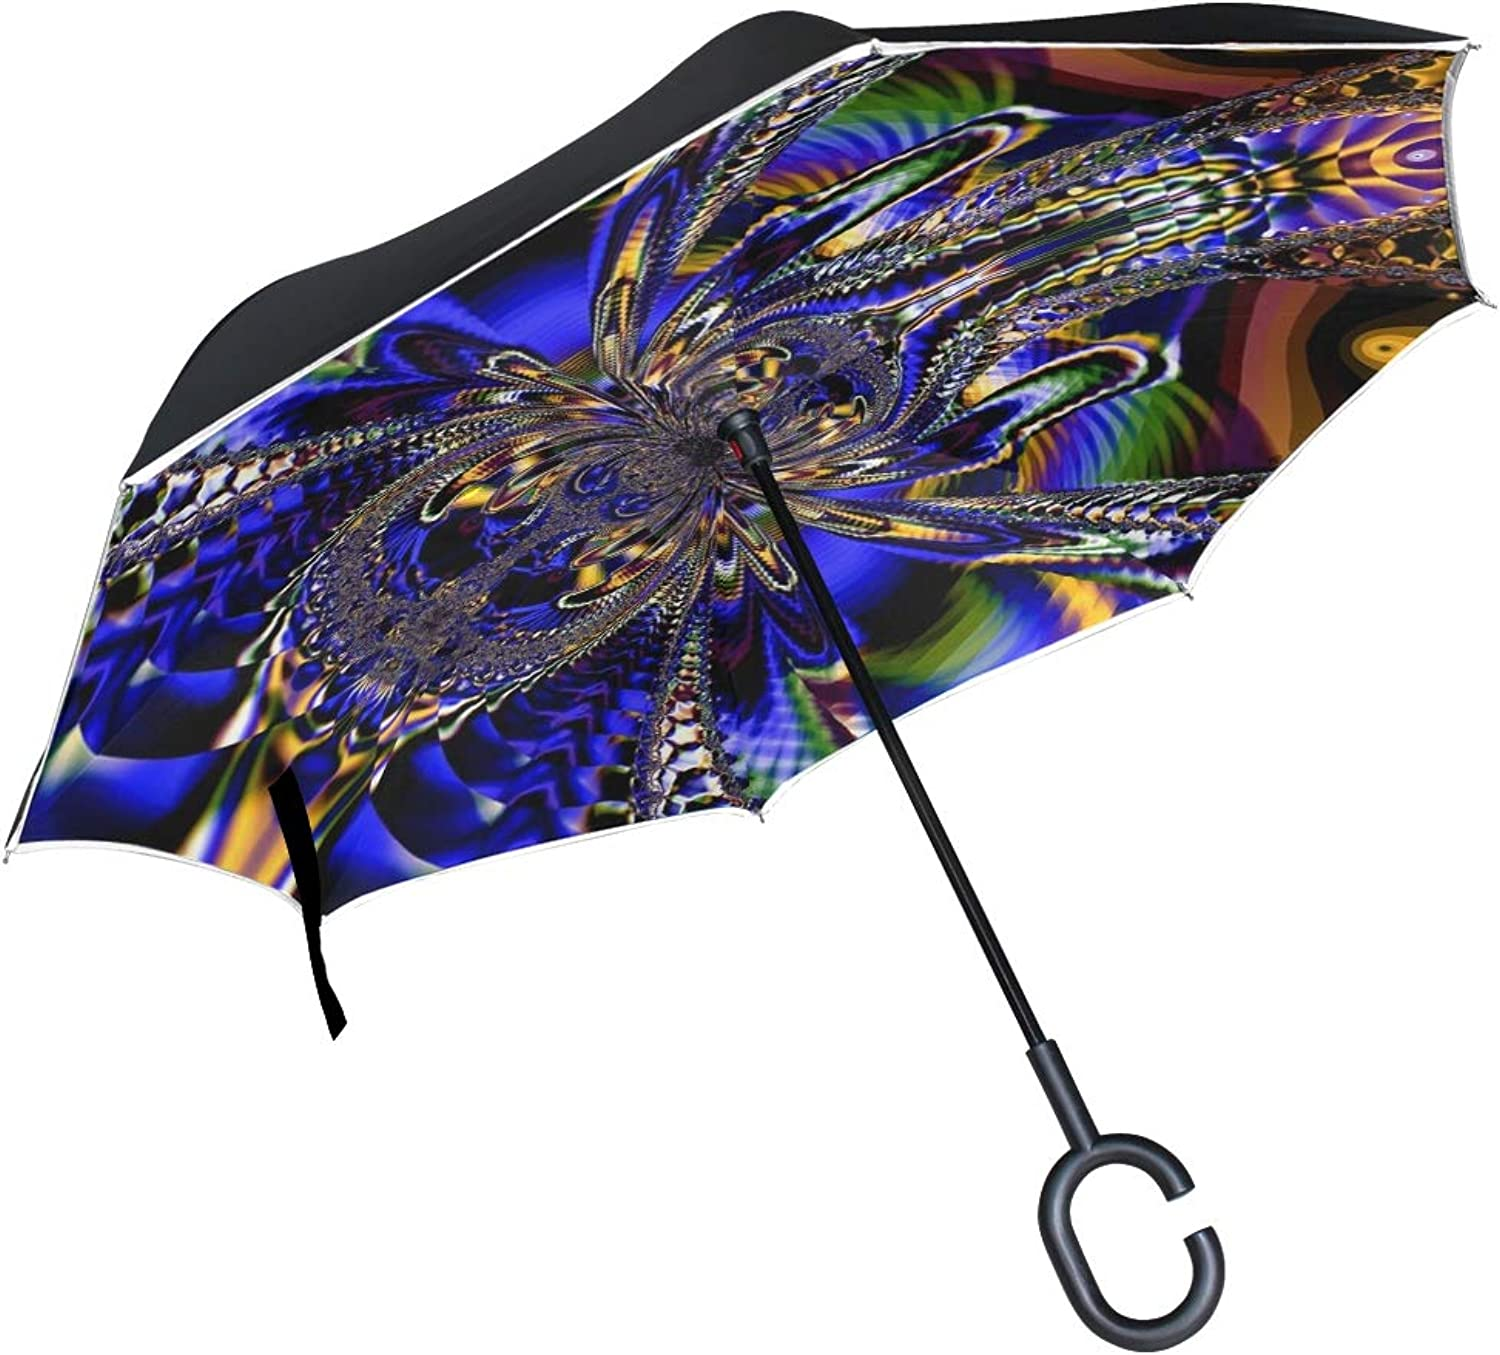 Double Layer Ingreened Fractal Artwork Art Abstract Design Ornamental 1501582 Umbrellas Reverse Folding Umbrella Windproof Uv Predection Big Straight Umbrella for Car Rain Outdoor with CShaped Handle